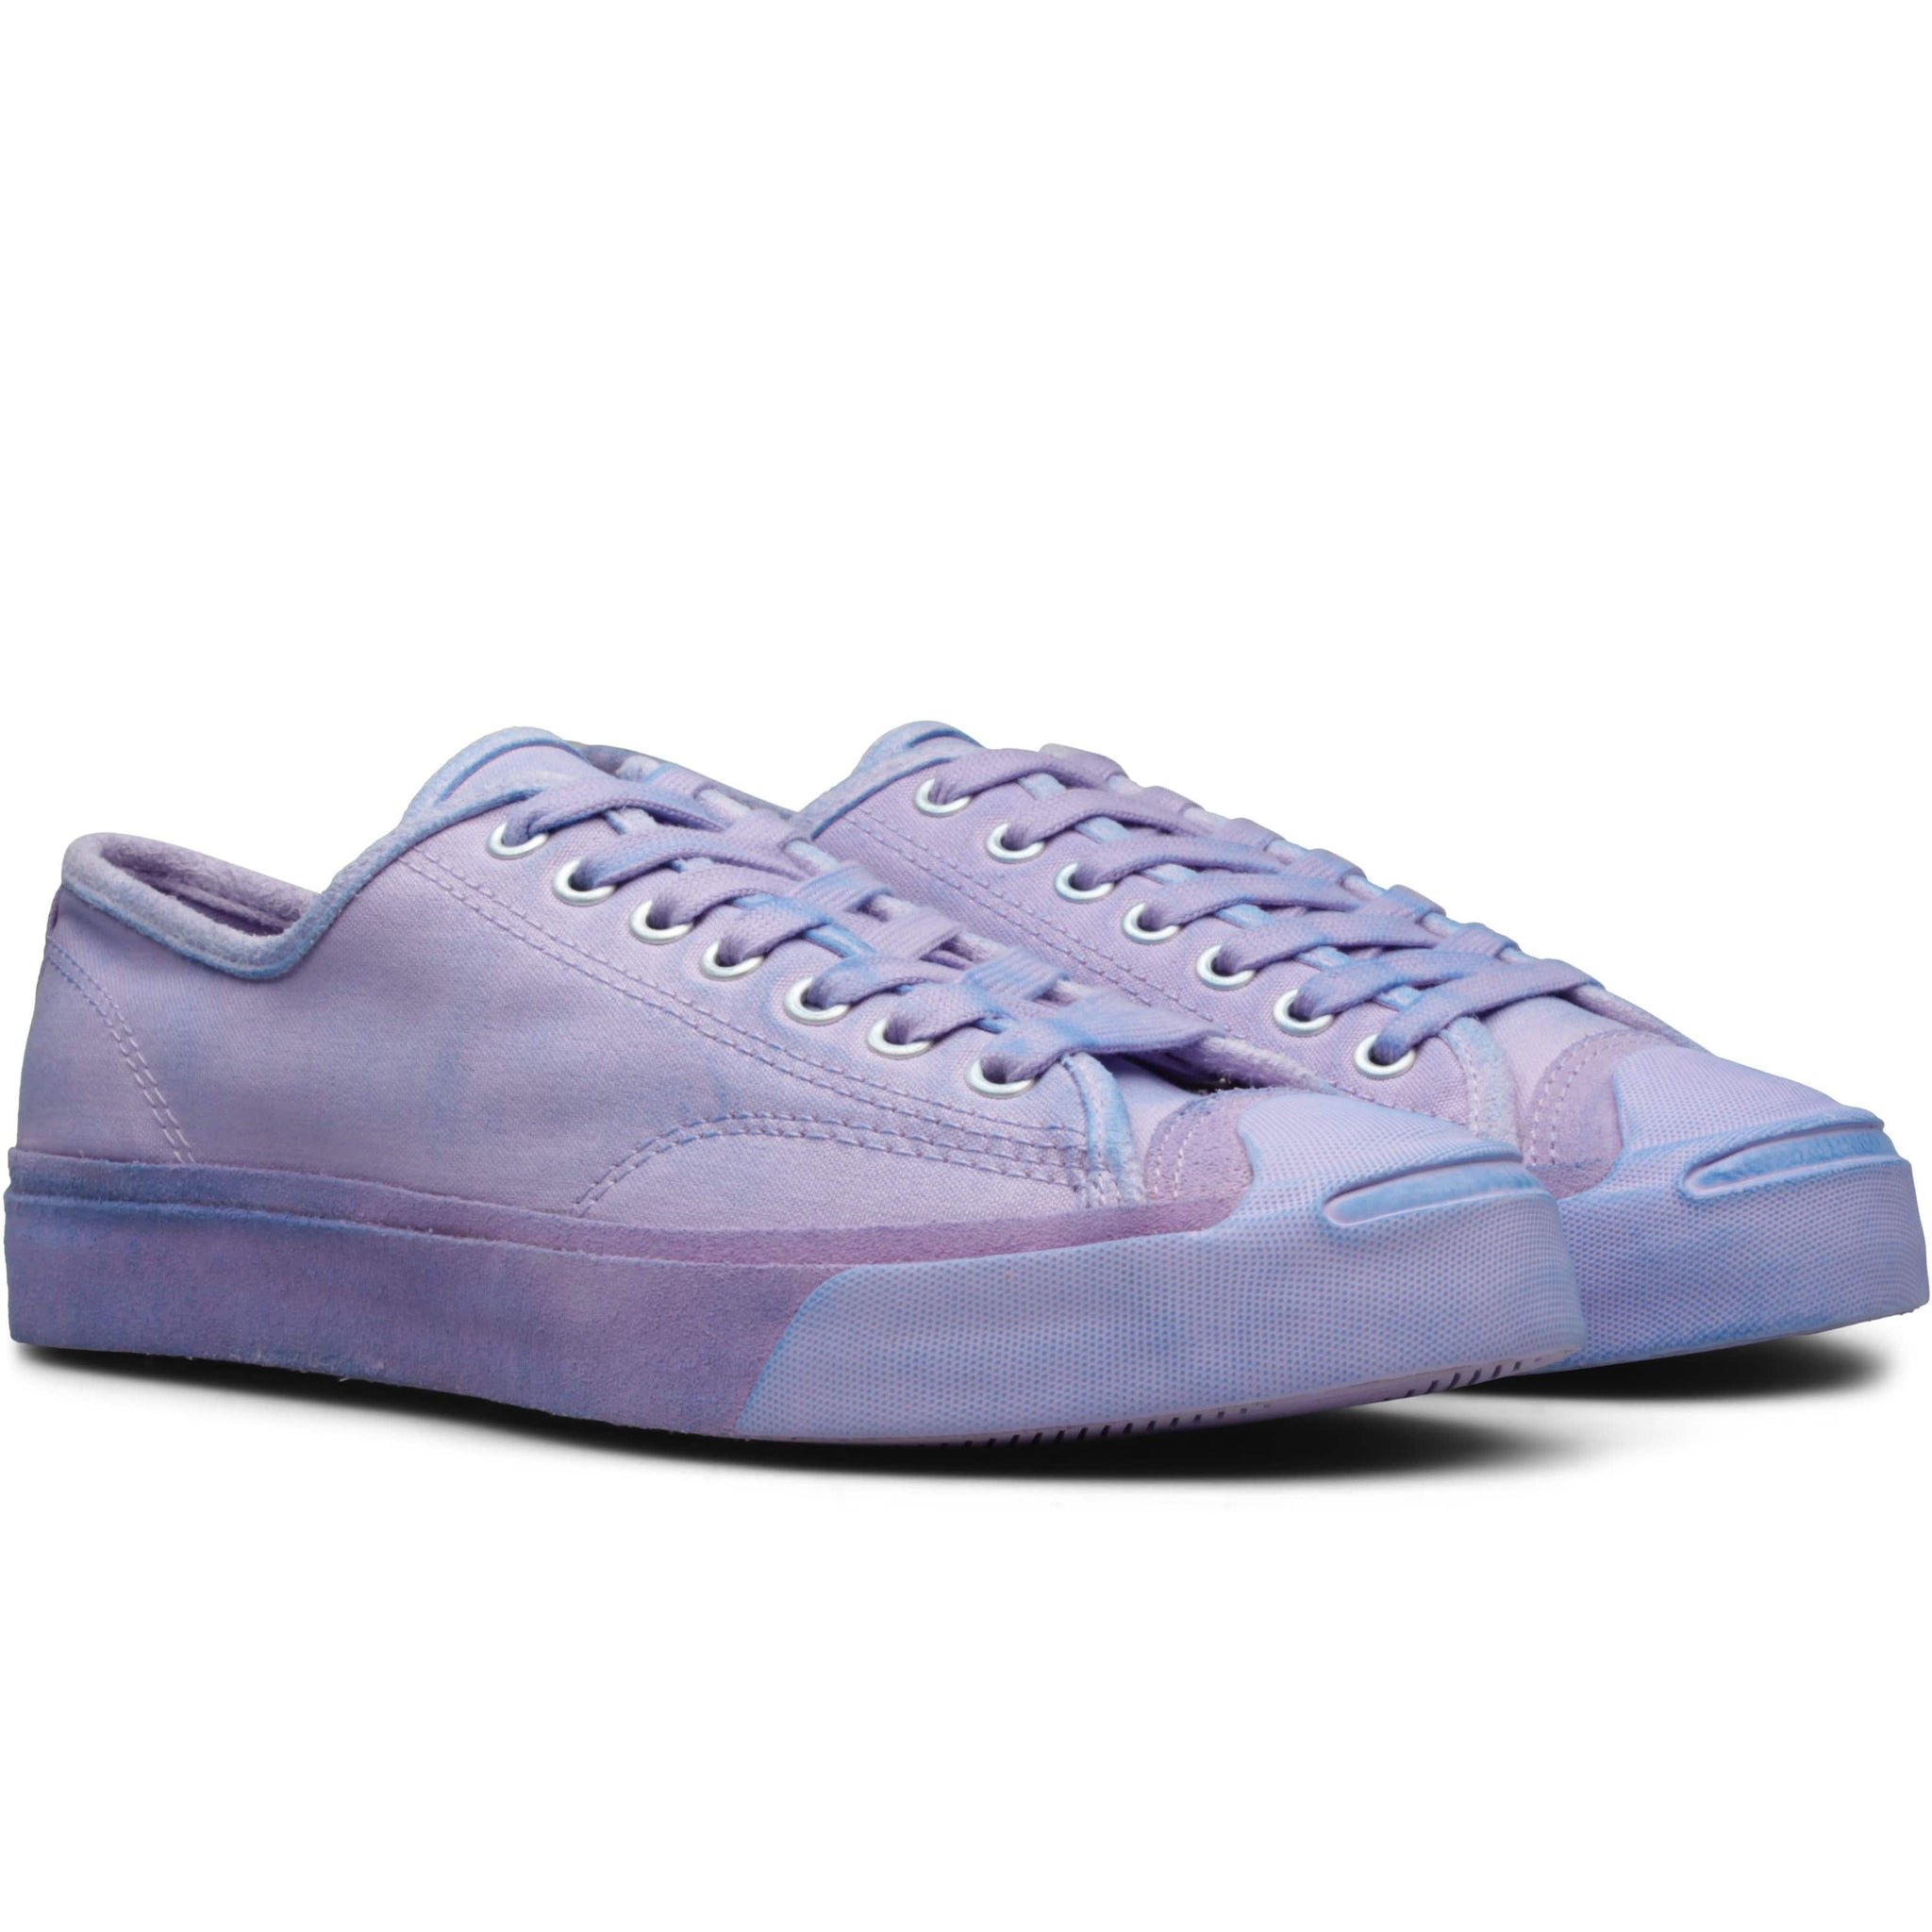 4eeac09b6b00 JACK PURCELL OX Lilac Totally Blue – Bodega